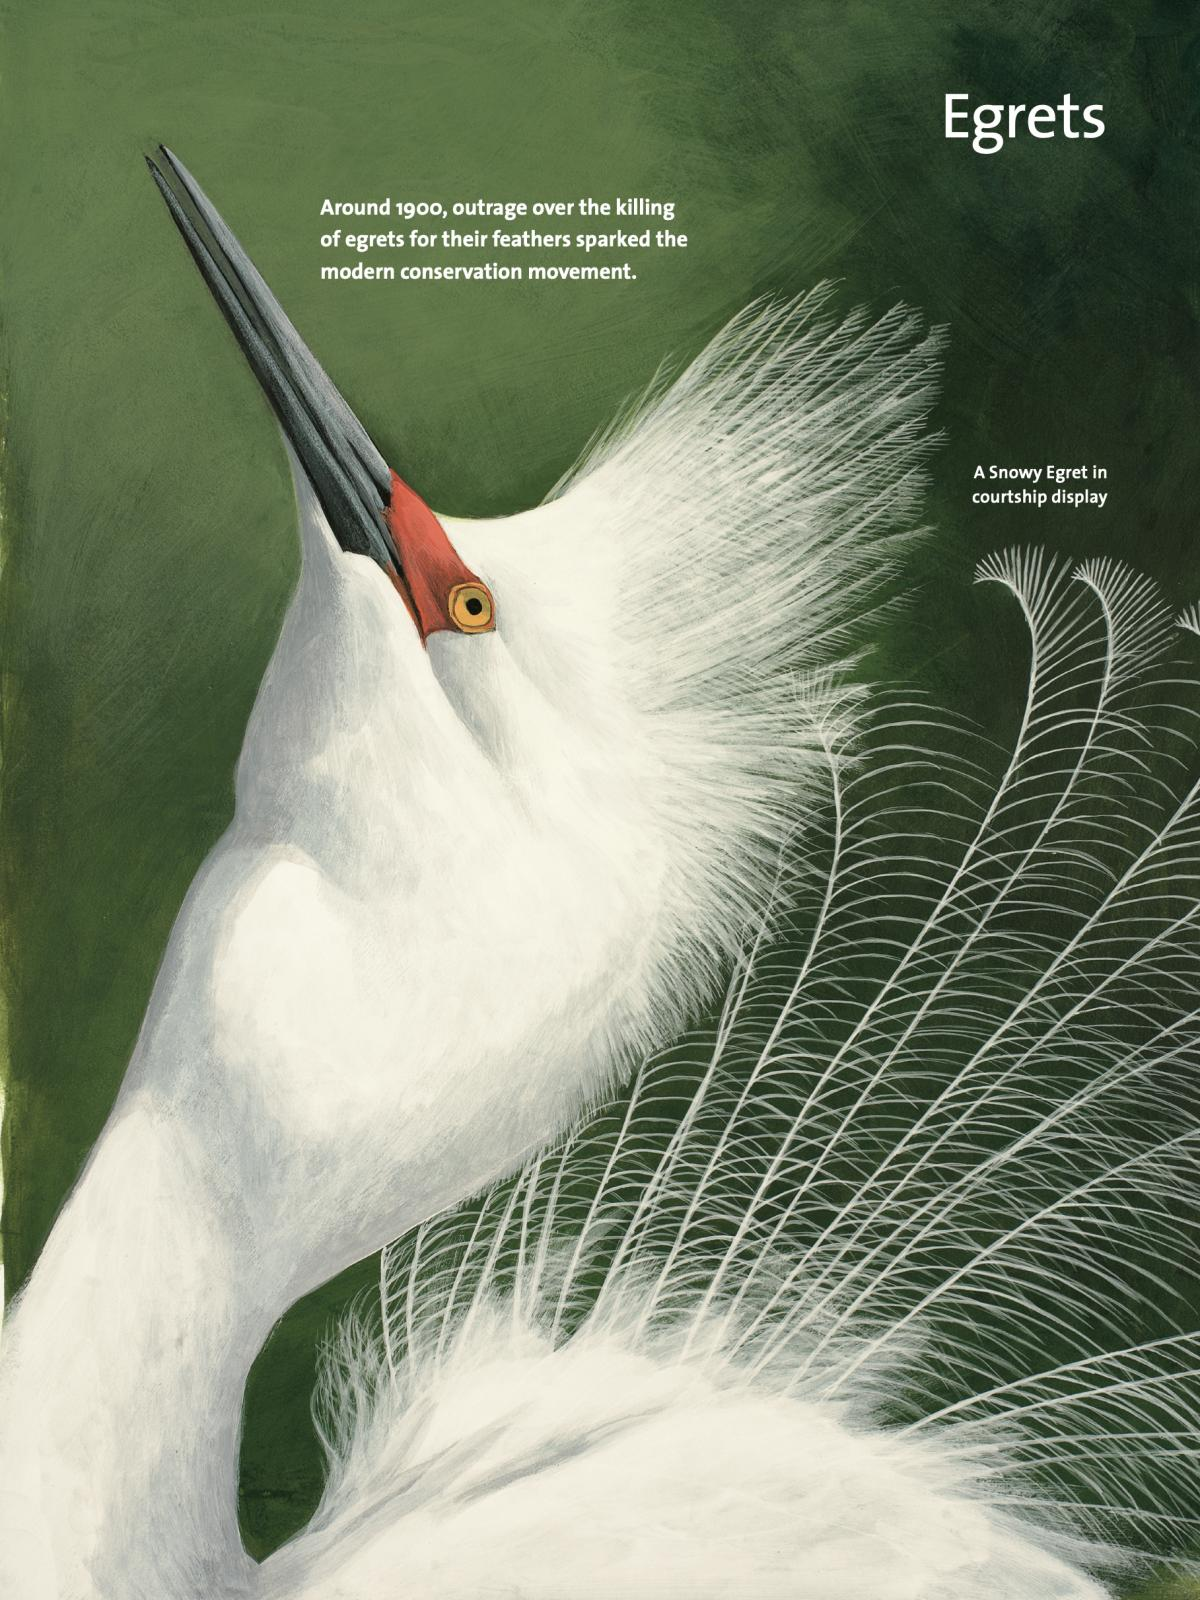 A page on Egrets from David Allen Sibley's What It's Like To Be A Bird.